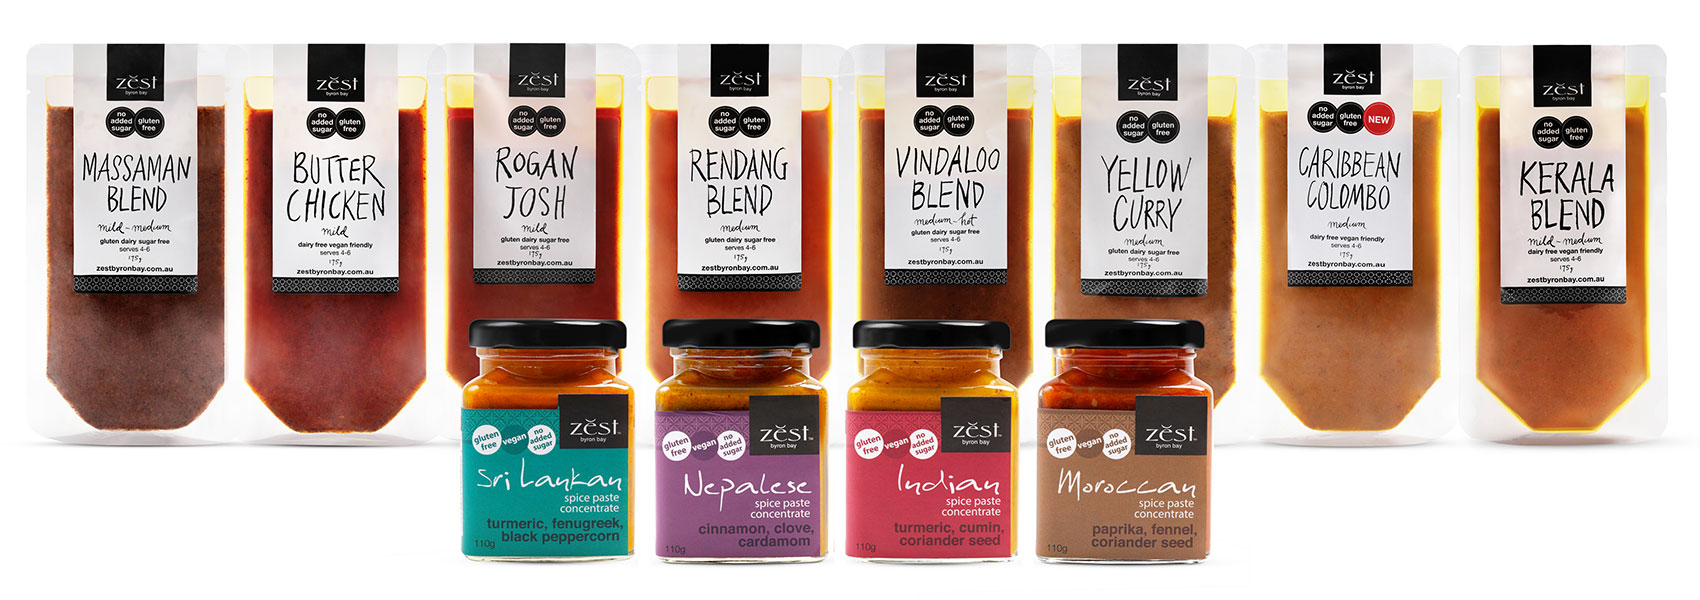 Zest Byron Bay Recipe Blends and Spice Pastes